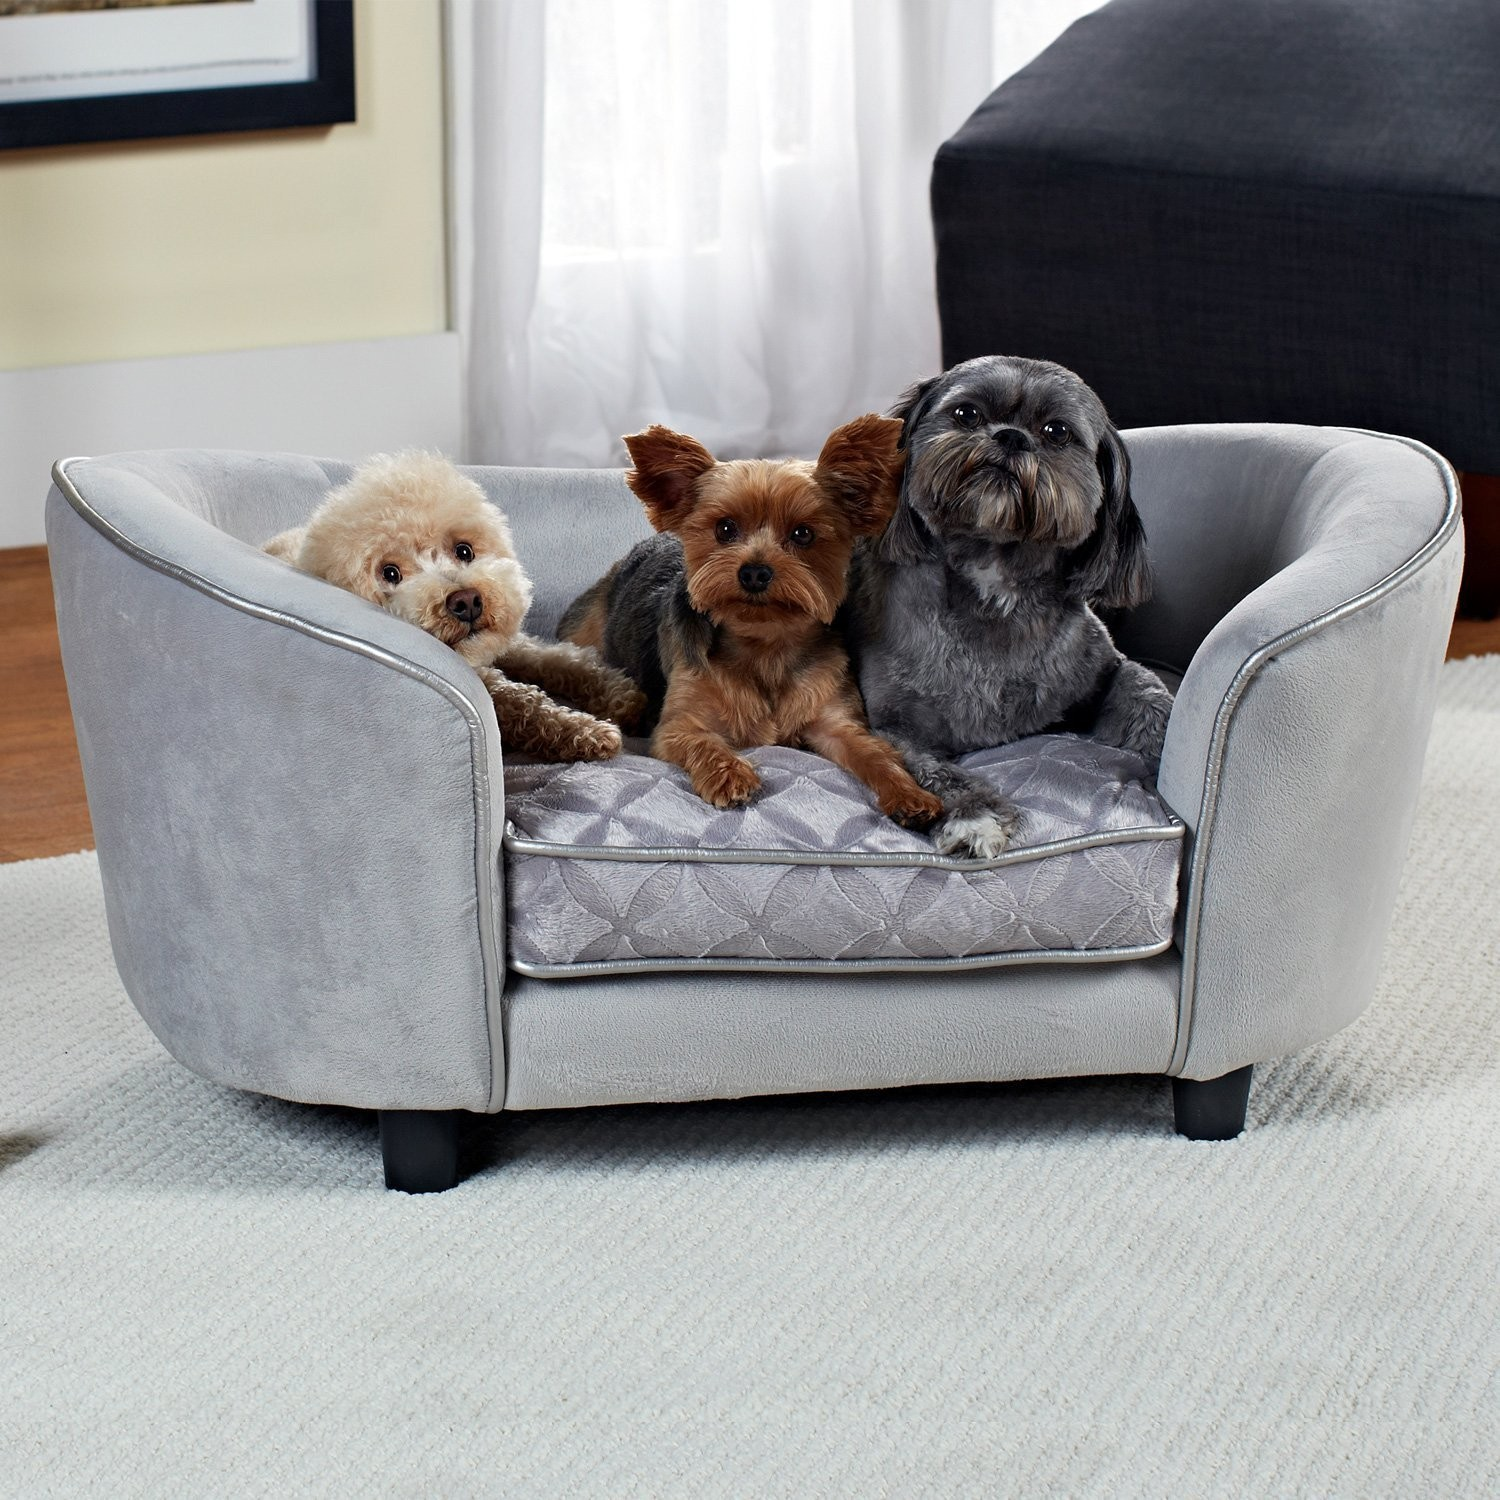 Dog sofa Bed New Amazon Enchanted Home Pet Quicksilver Pet sofa Bed by 3 Portrait